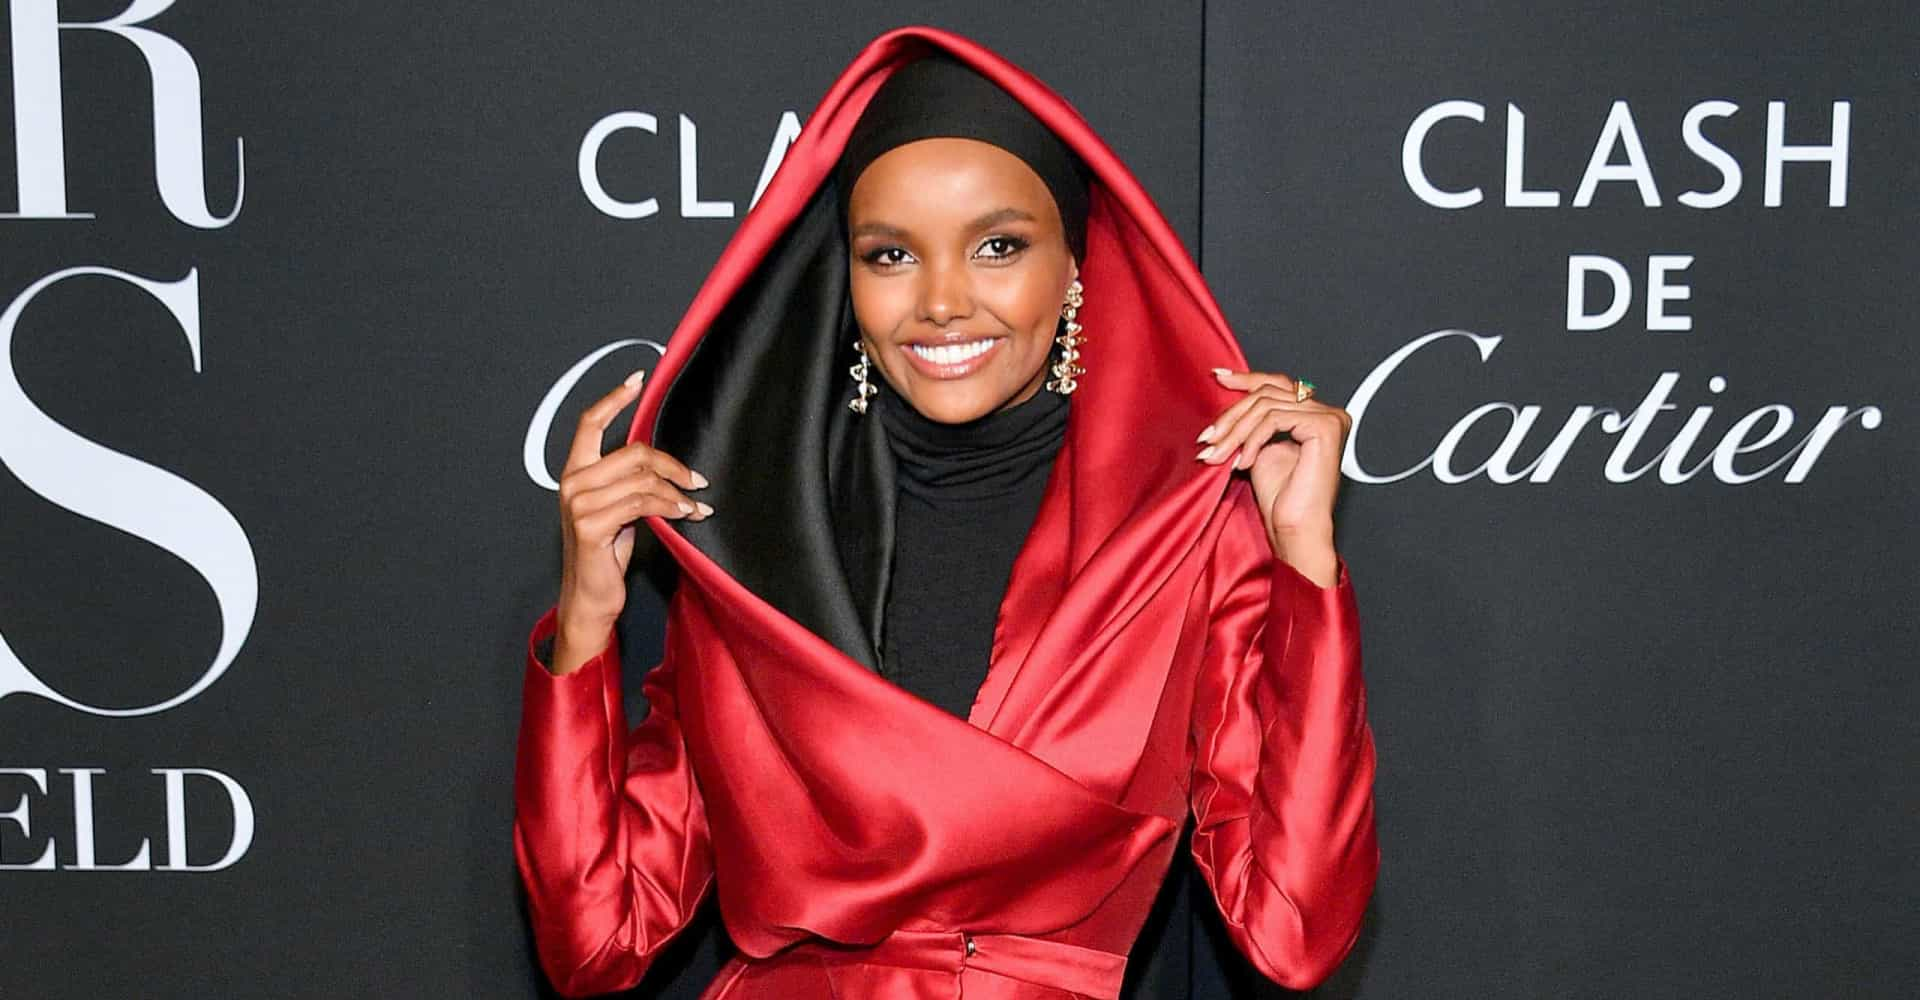 The high-fashion hijab, as shown by top model Halima Aden